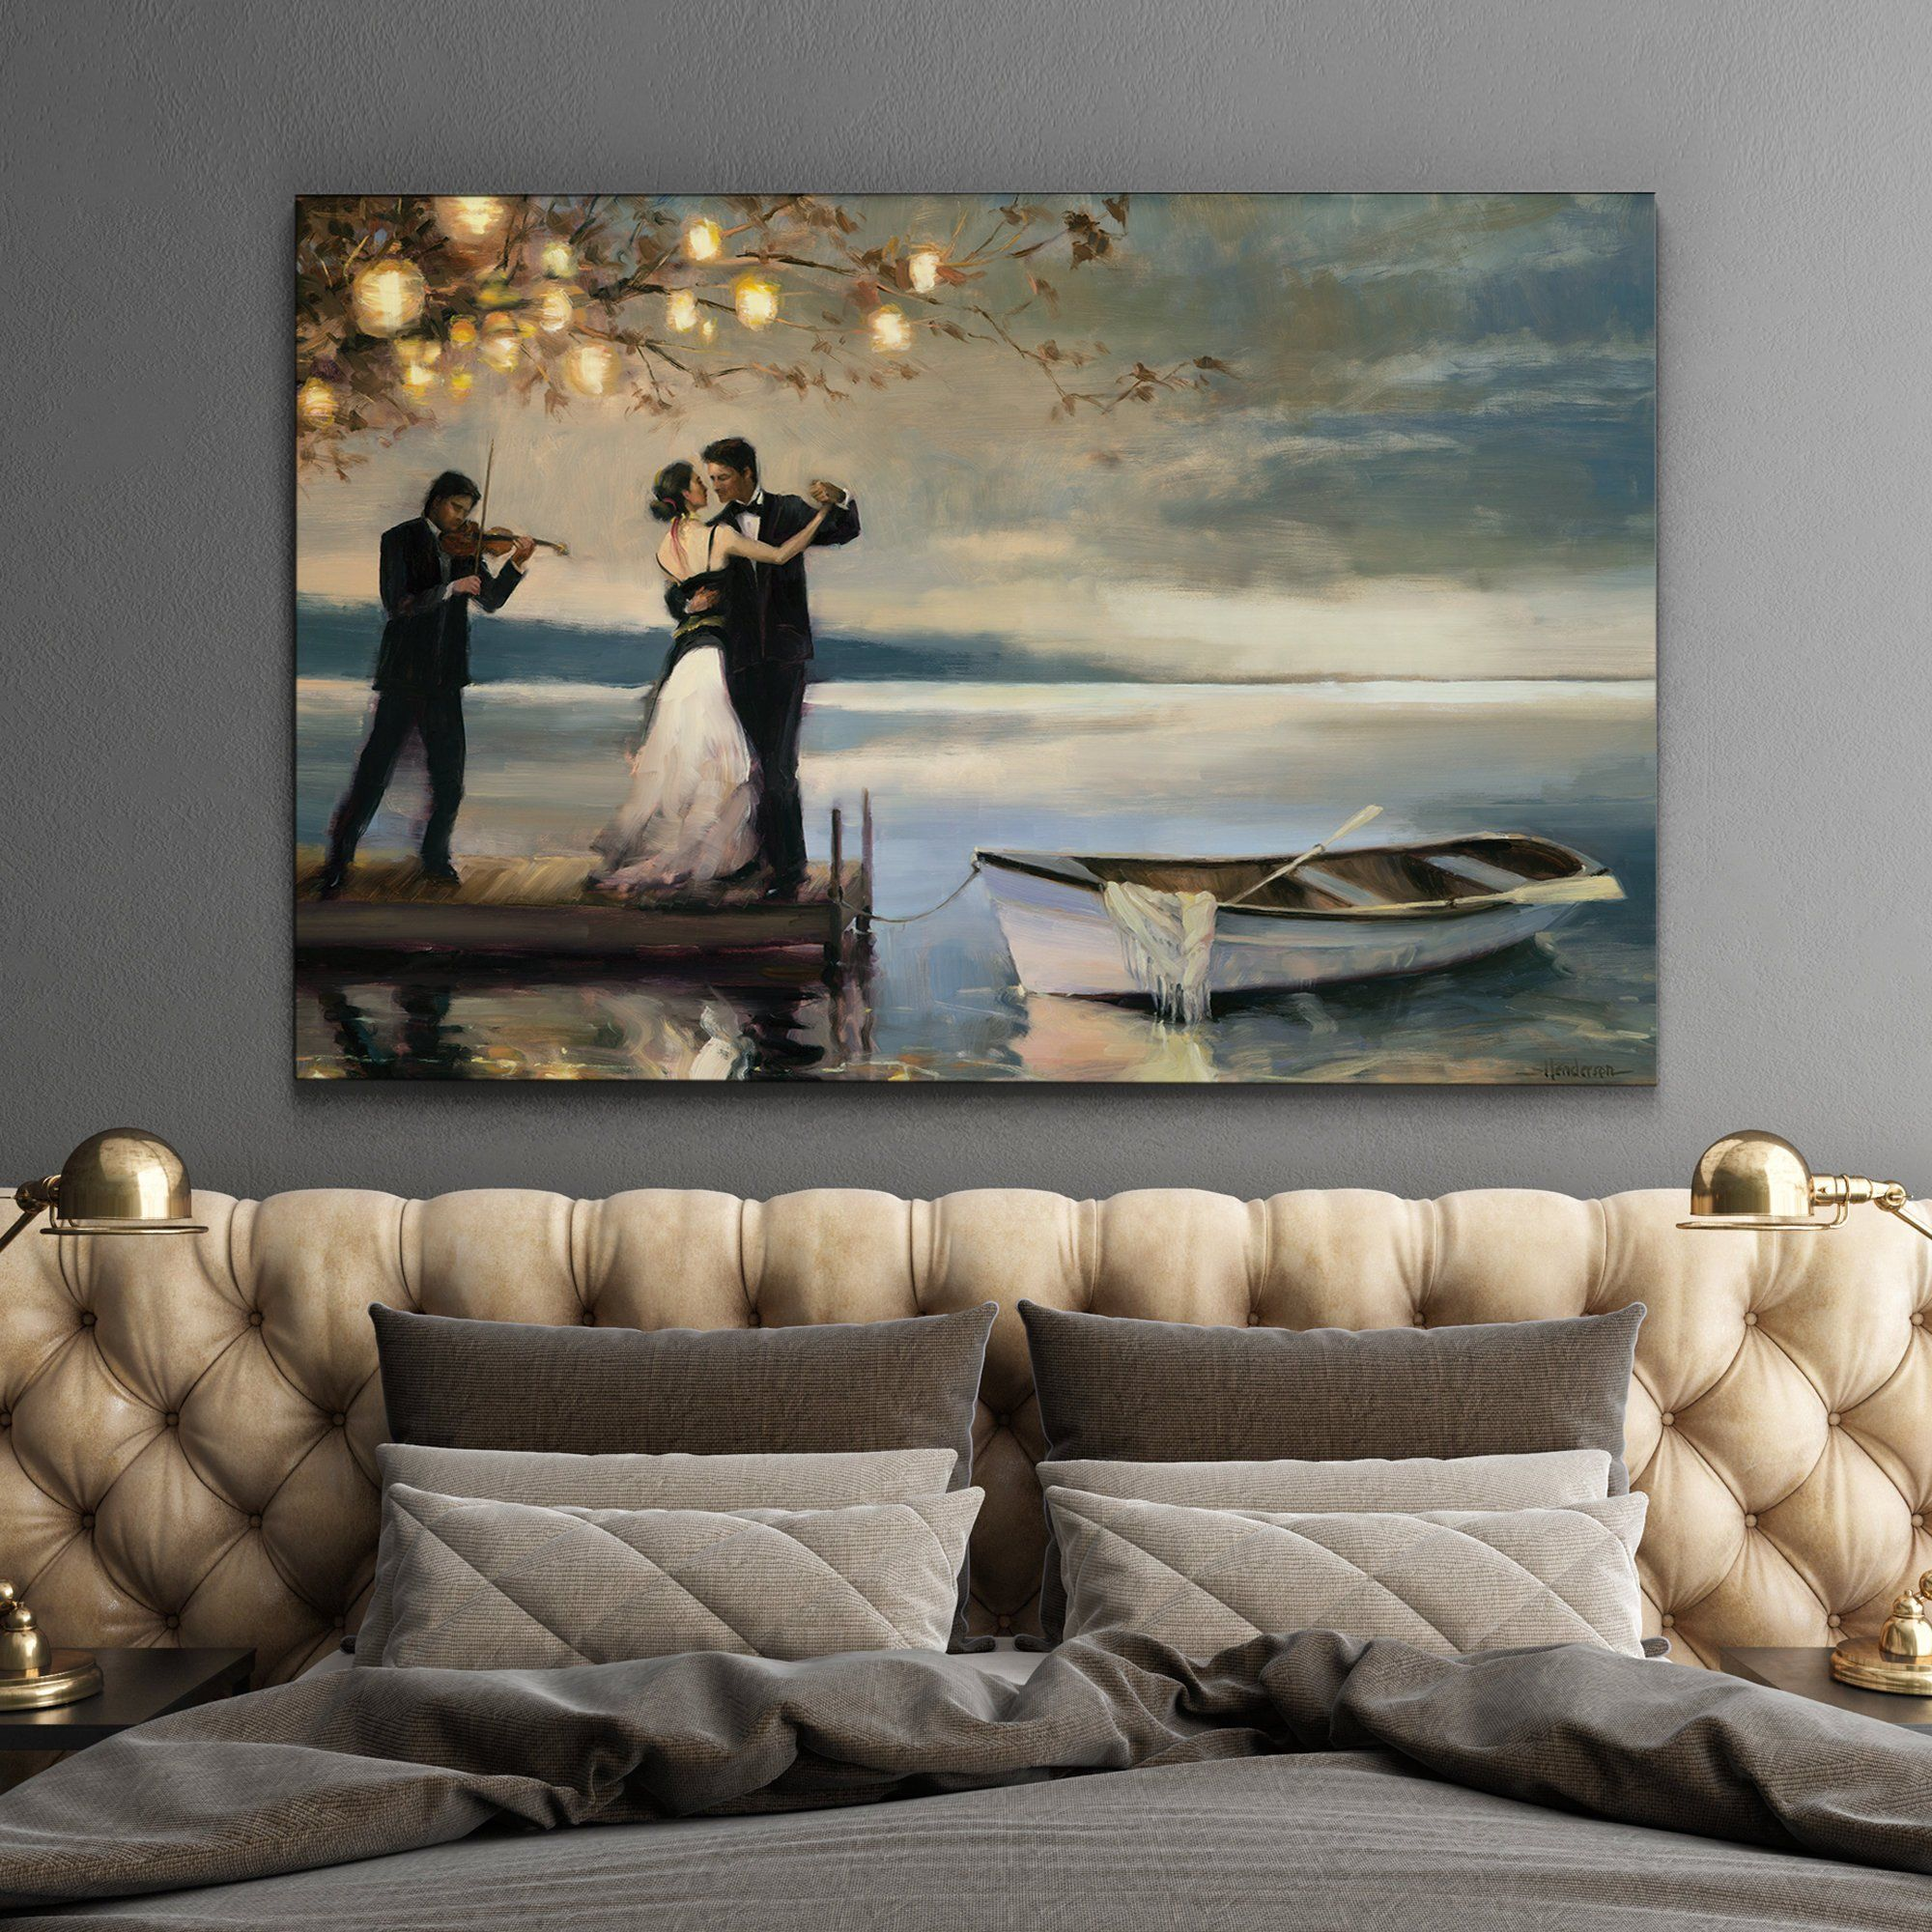 Office Wall Decor Ideas Awesome Wall Art For Master Bedroom In